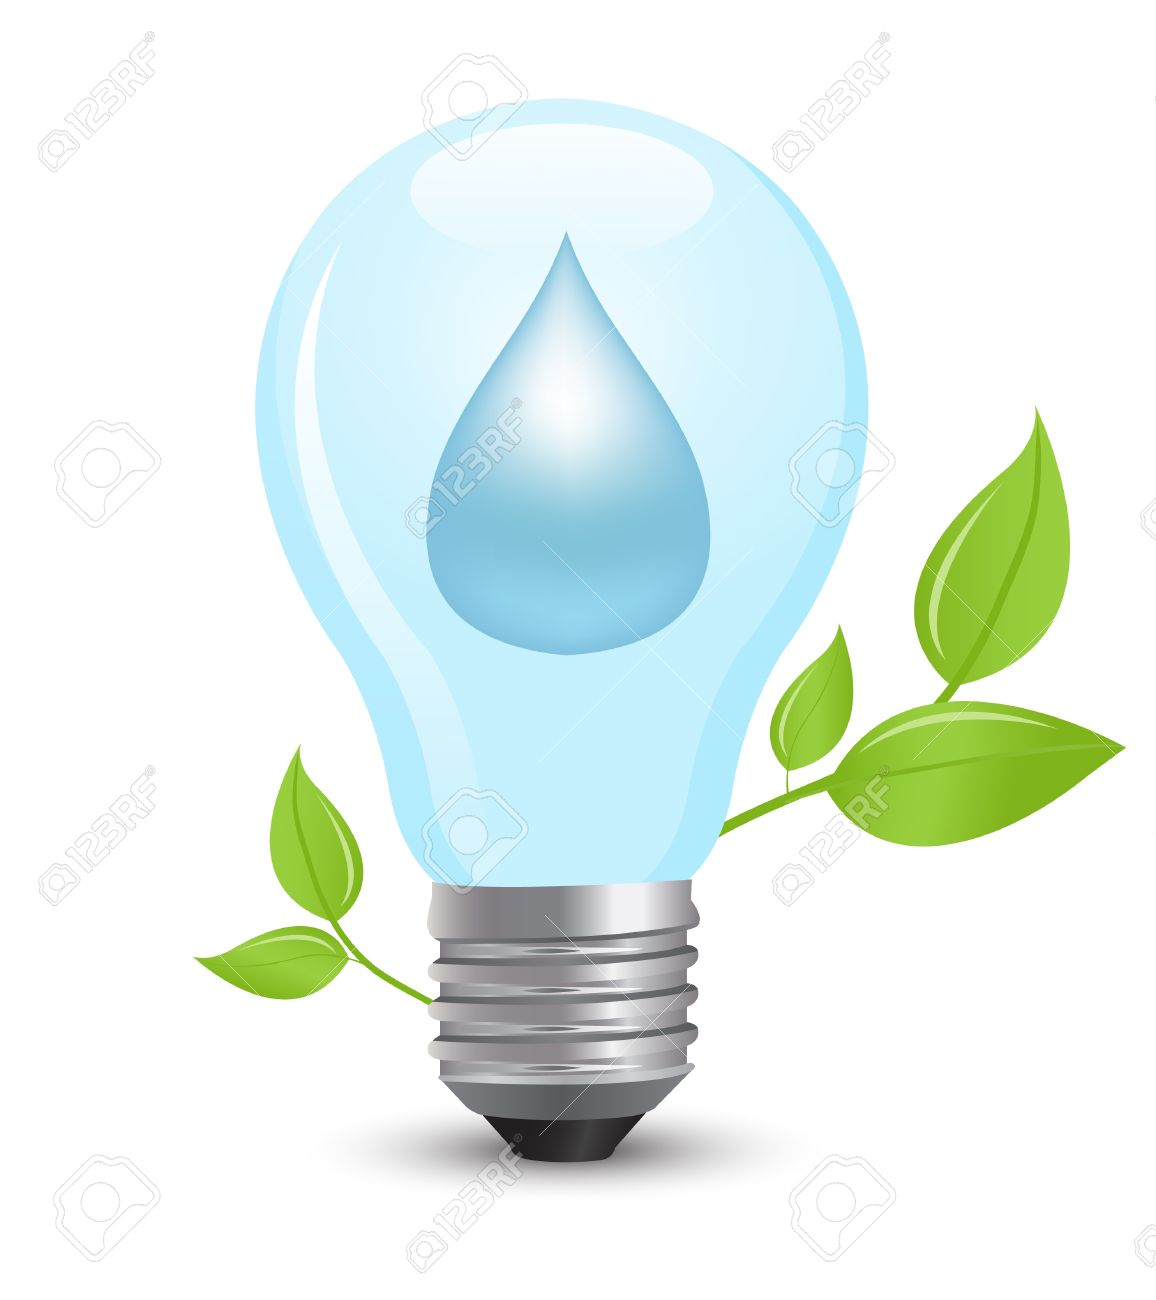 Electric Light Bulb Symbolizing Energy Of Water Royalty Free.